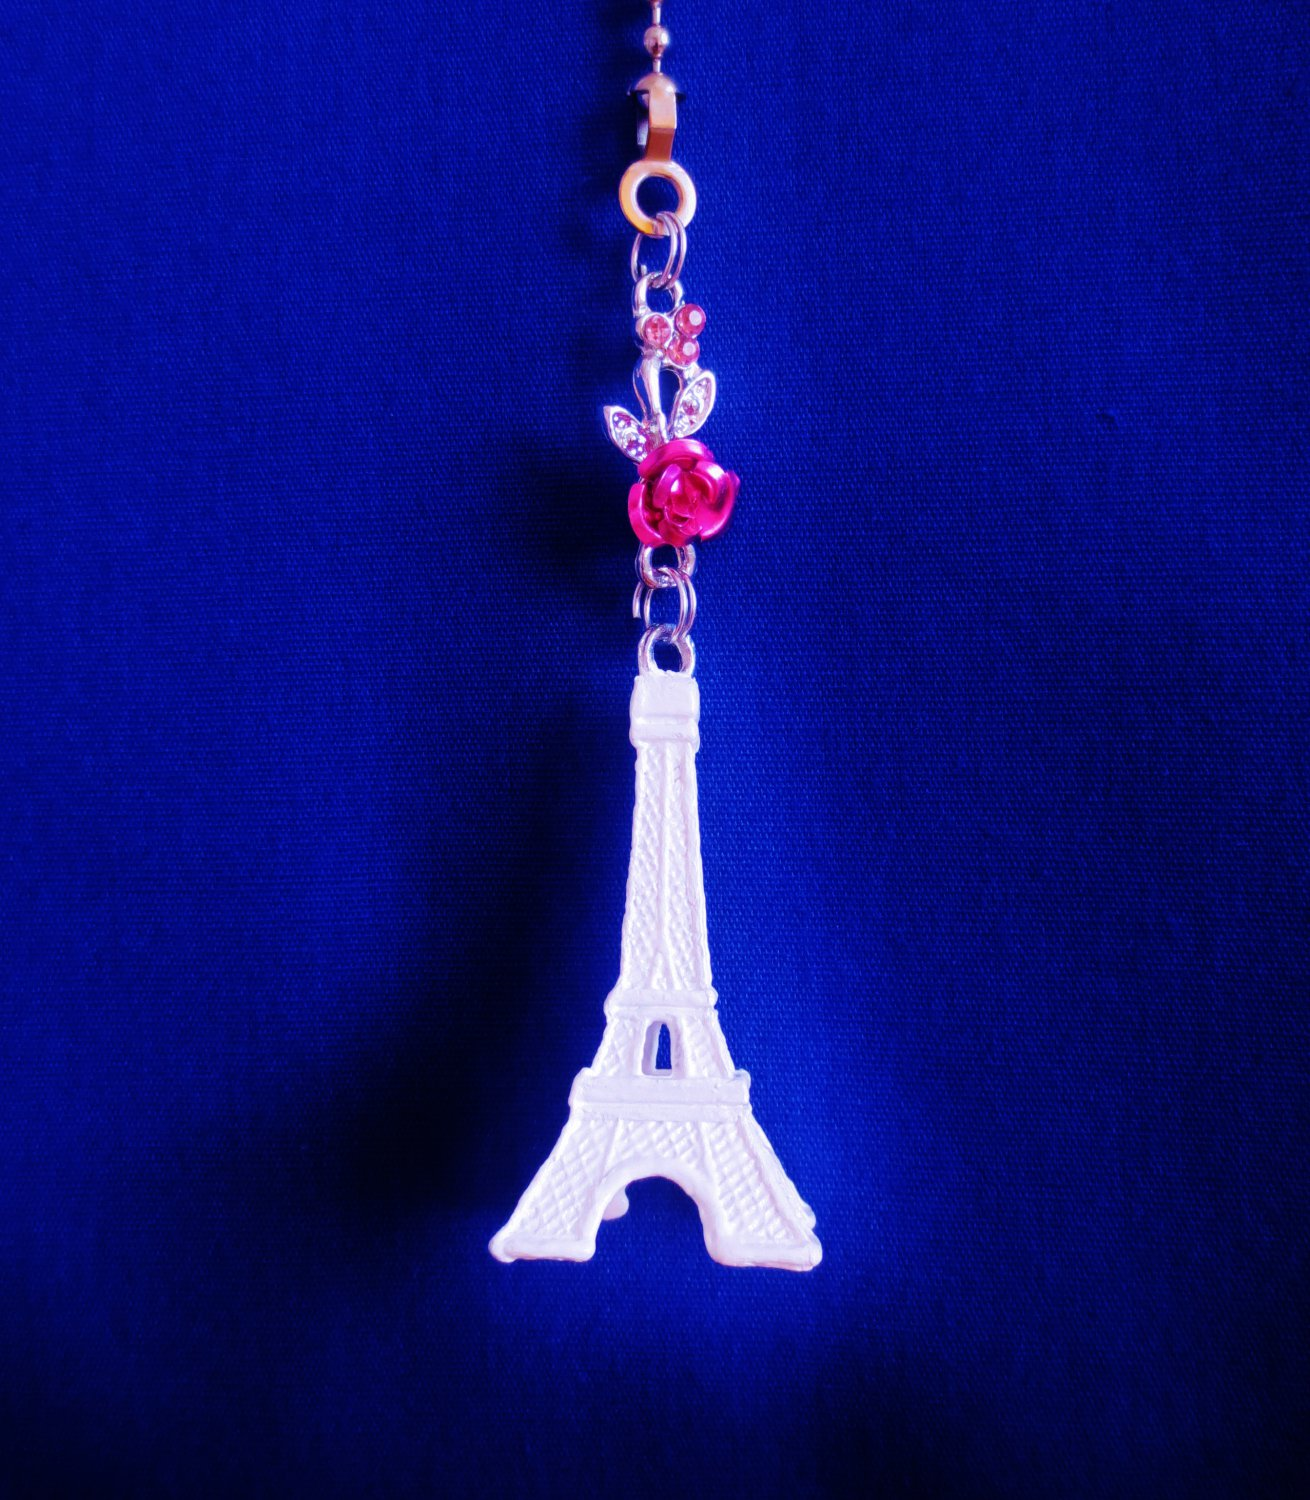 Eiffel Tower Paris Landmark White Ceiling Fan Light Pull Chain